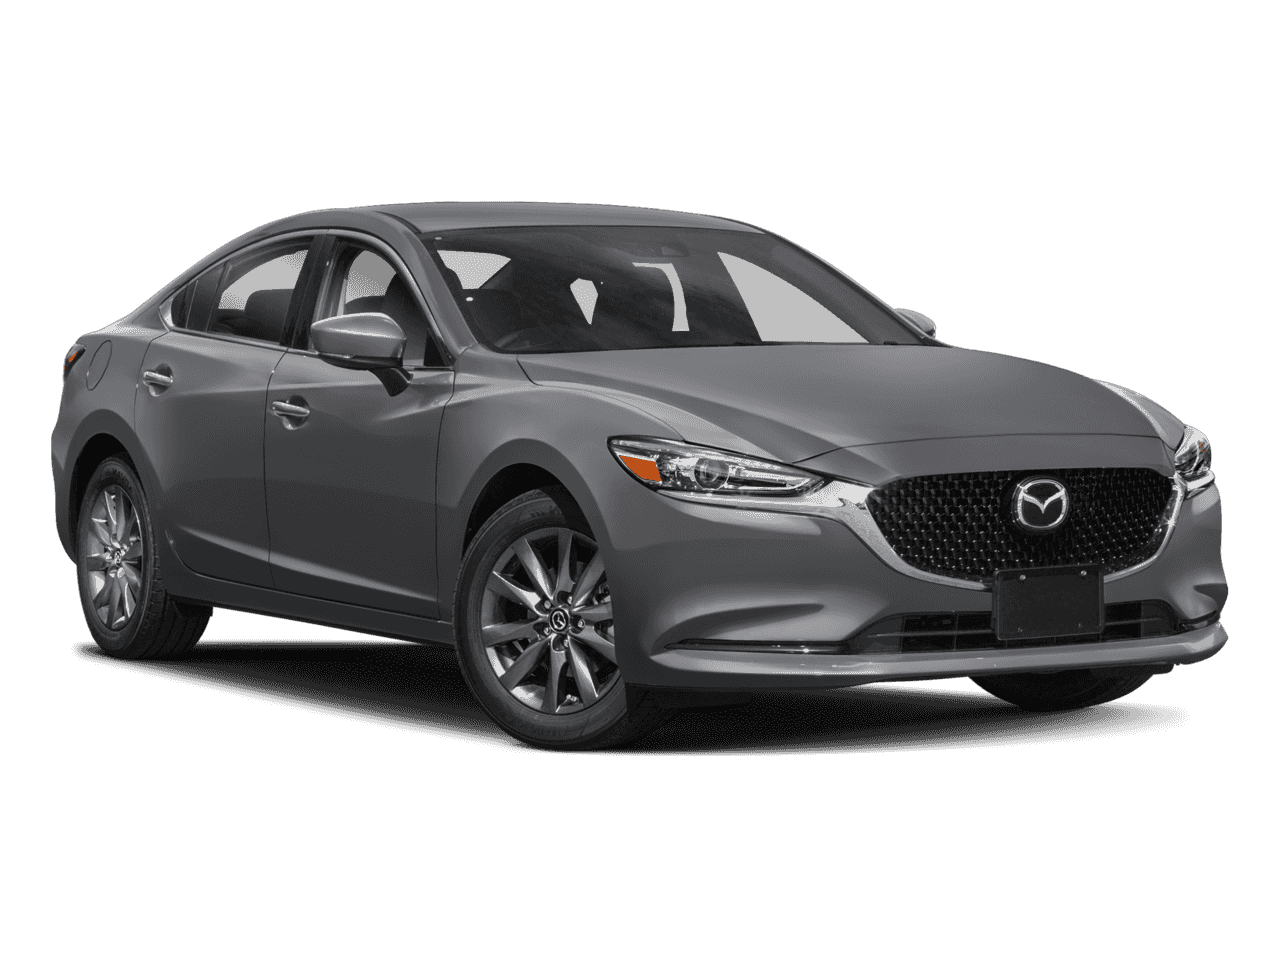 New 2018 Mazda Mazda6 Sport FWD 4dr Car